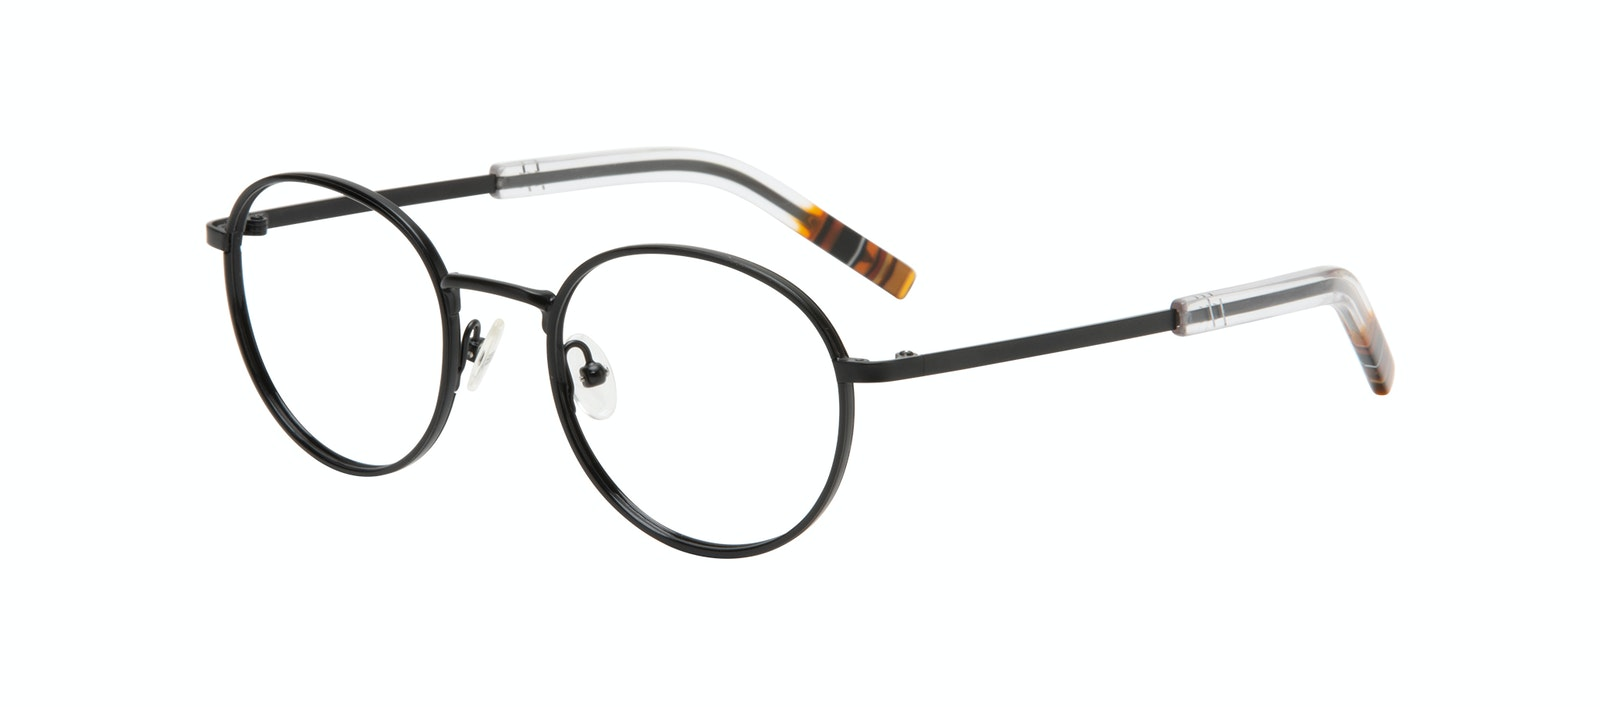 Affordable Fashion Glasses Round Eyeglasses Men Reach Matte Black Tilt